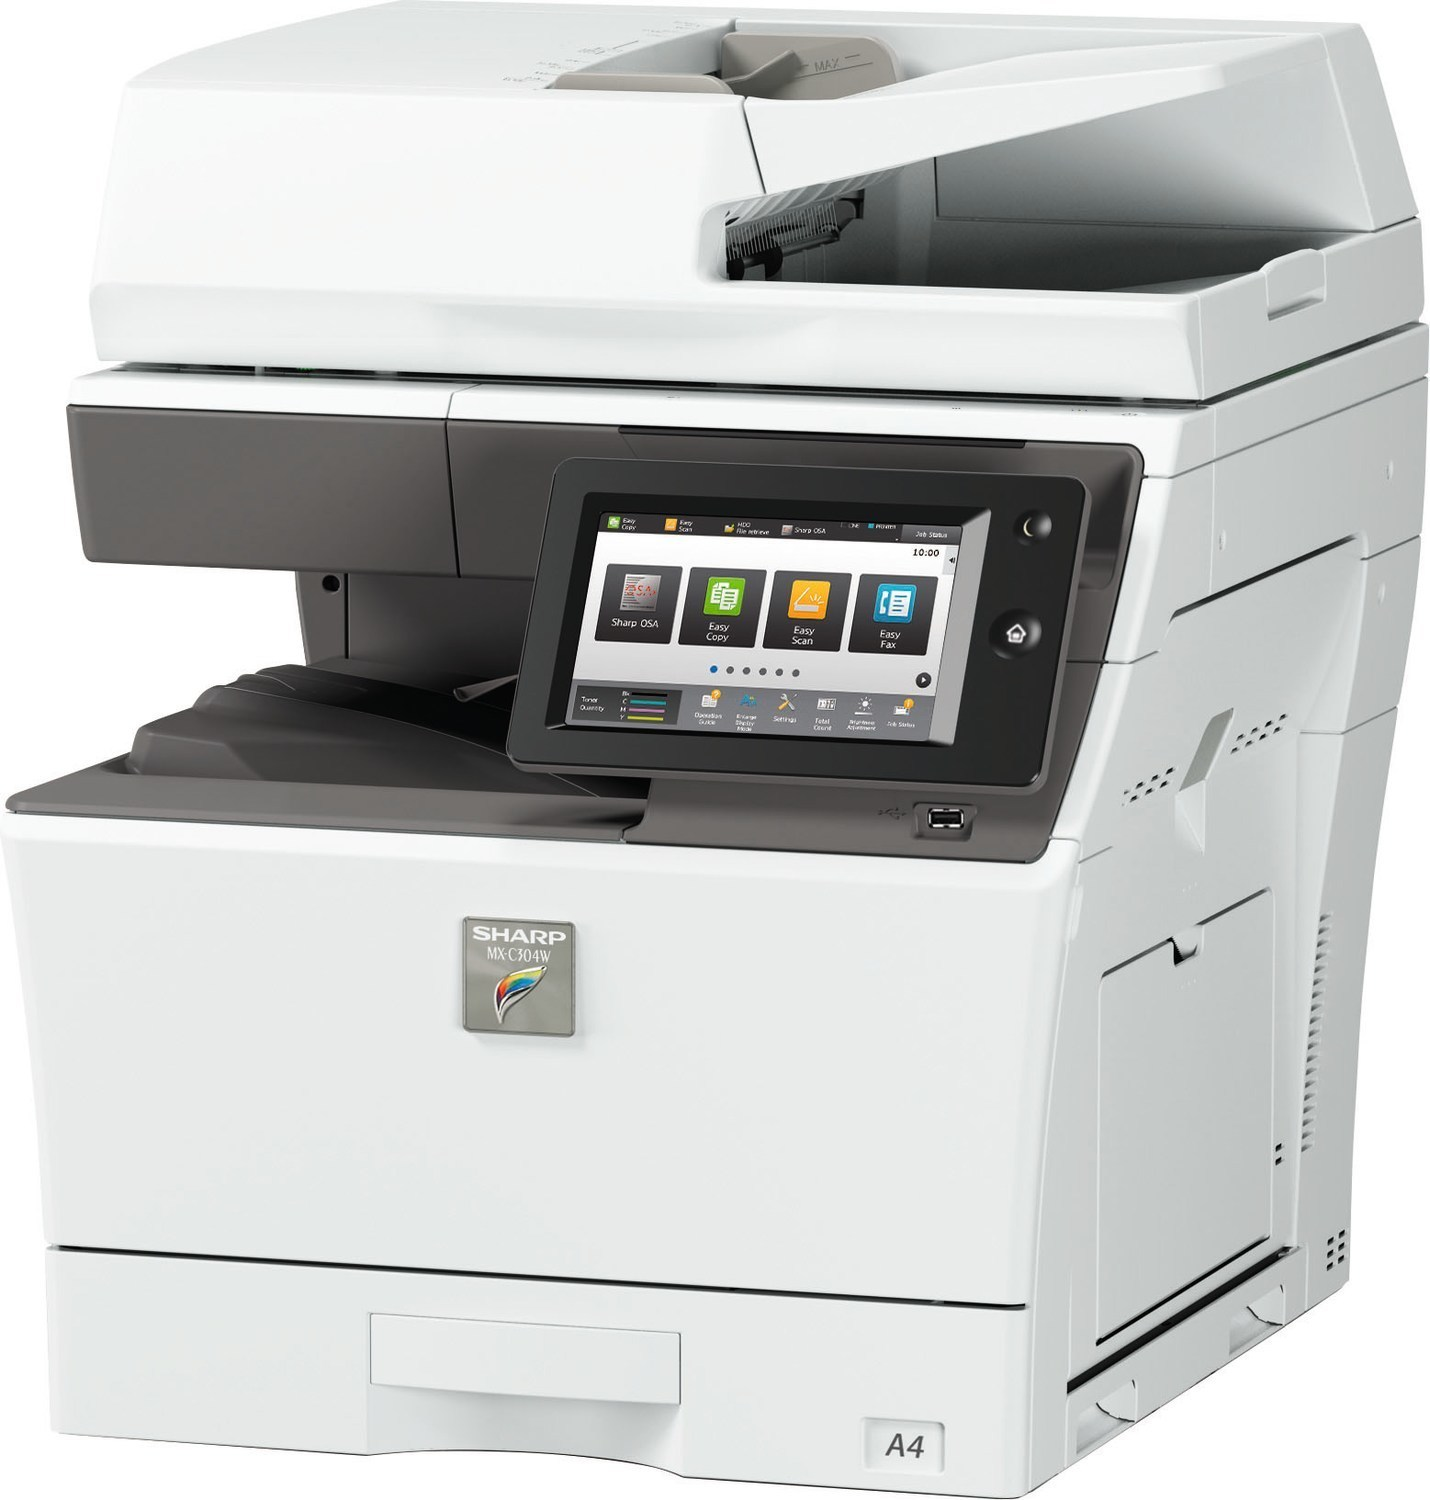 Sharp Expands A42 Lineup With Two New Desktop Color Multifunction